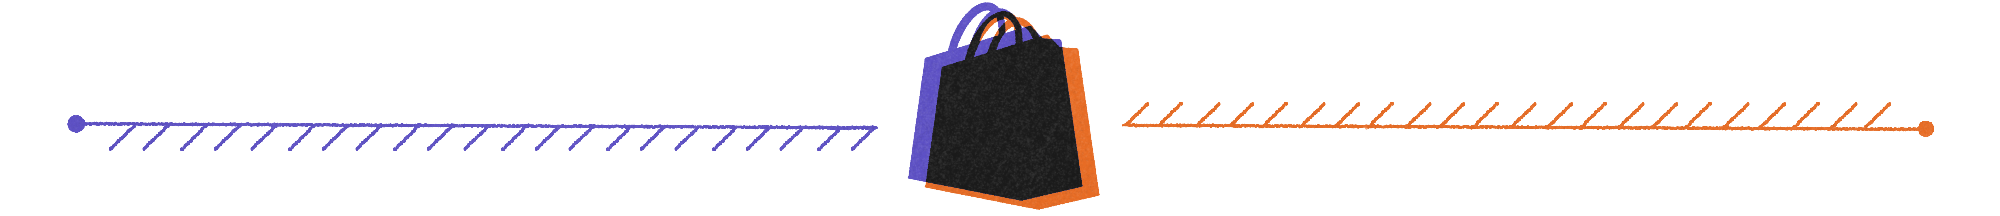 abstract purple and orange shopify and tiktok logo